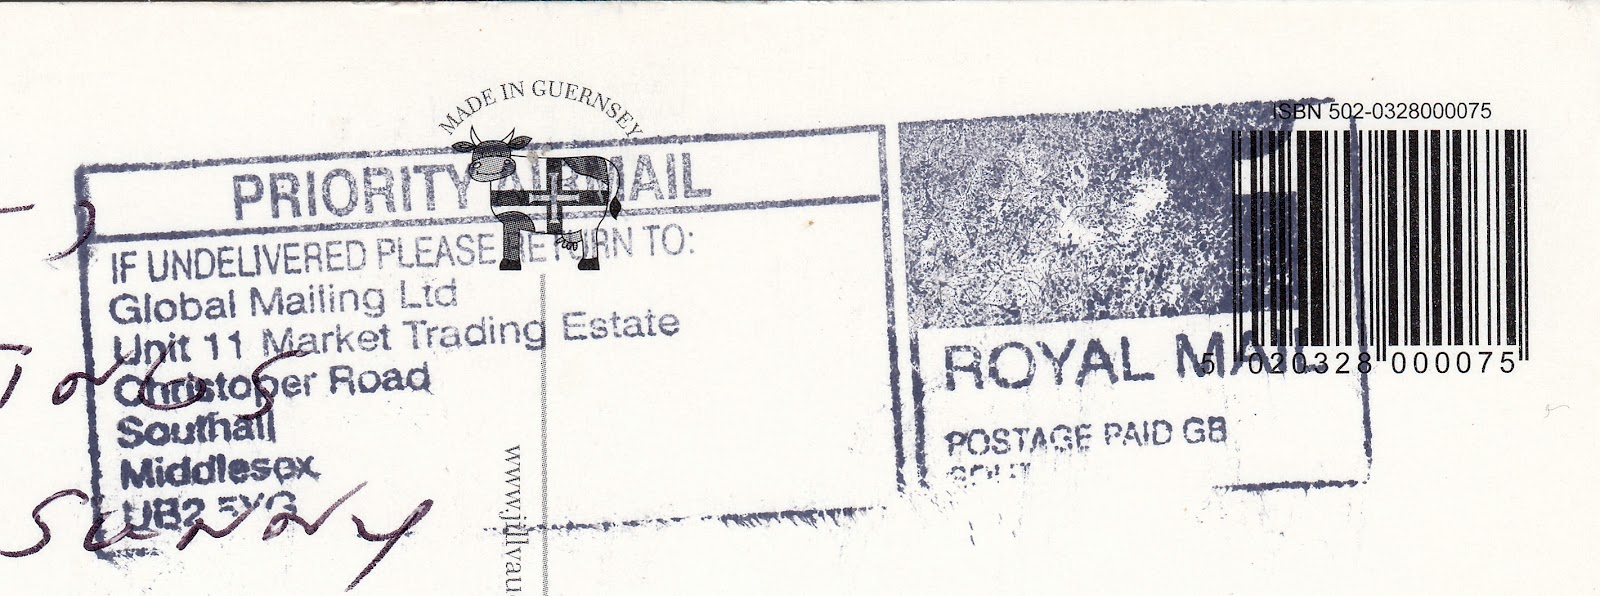 Royal Mail Postage Rates To Canada 2011